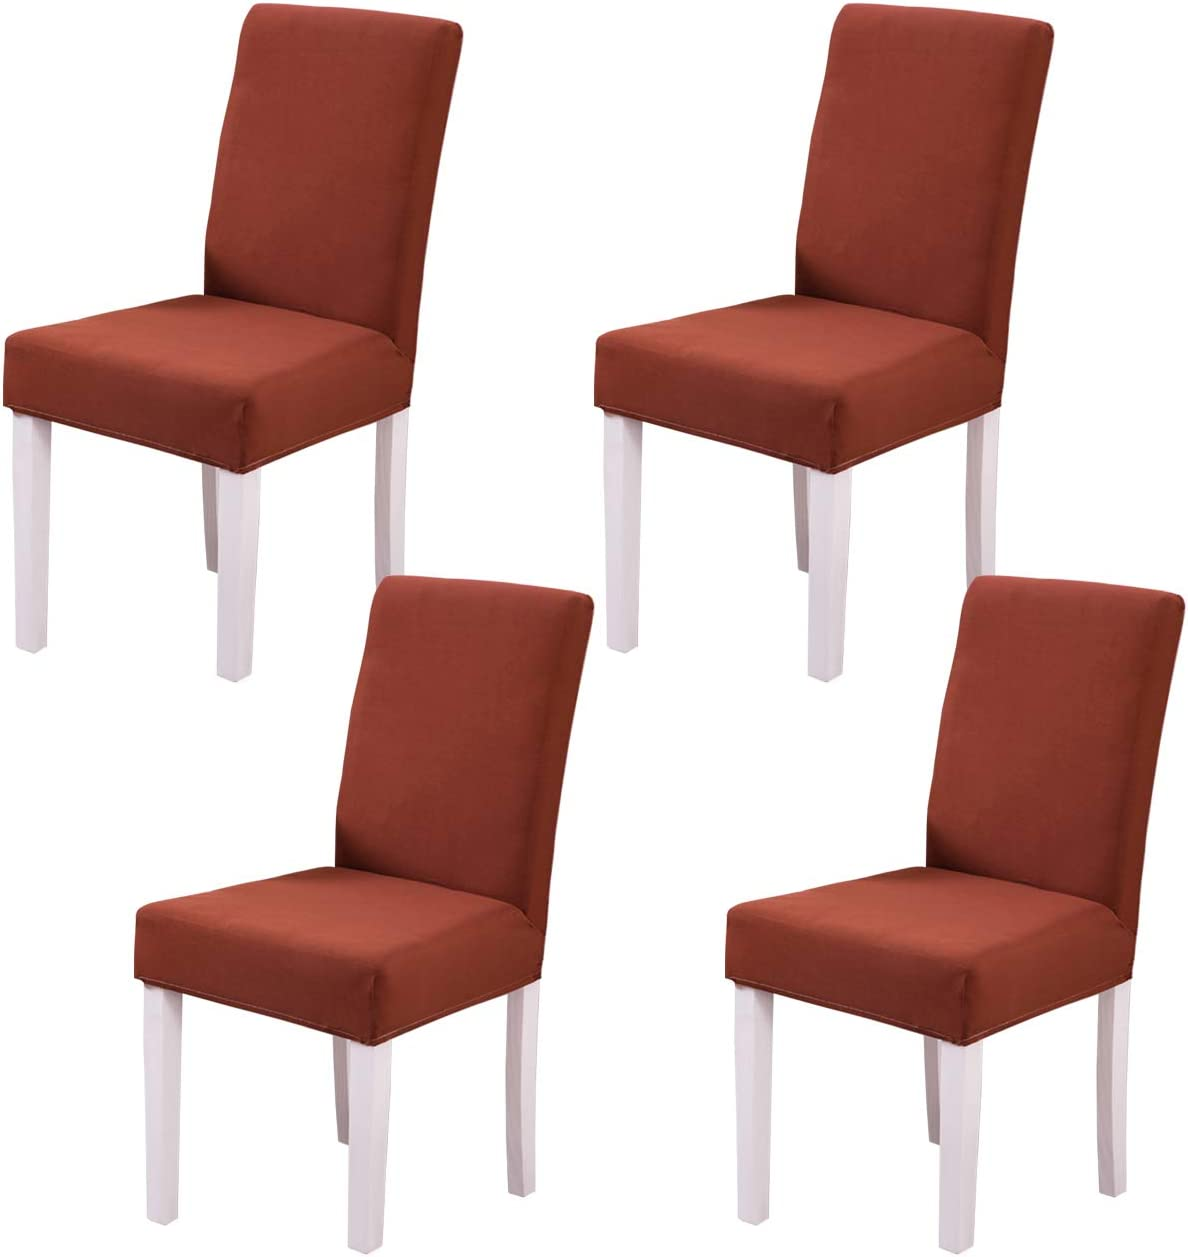 Ogrmar 4PCS Stretch Removable Washable Dining Room Chair Protector Slipcovers/Home Decor Dining Room Seat Cover (Coffee)